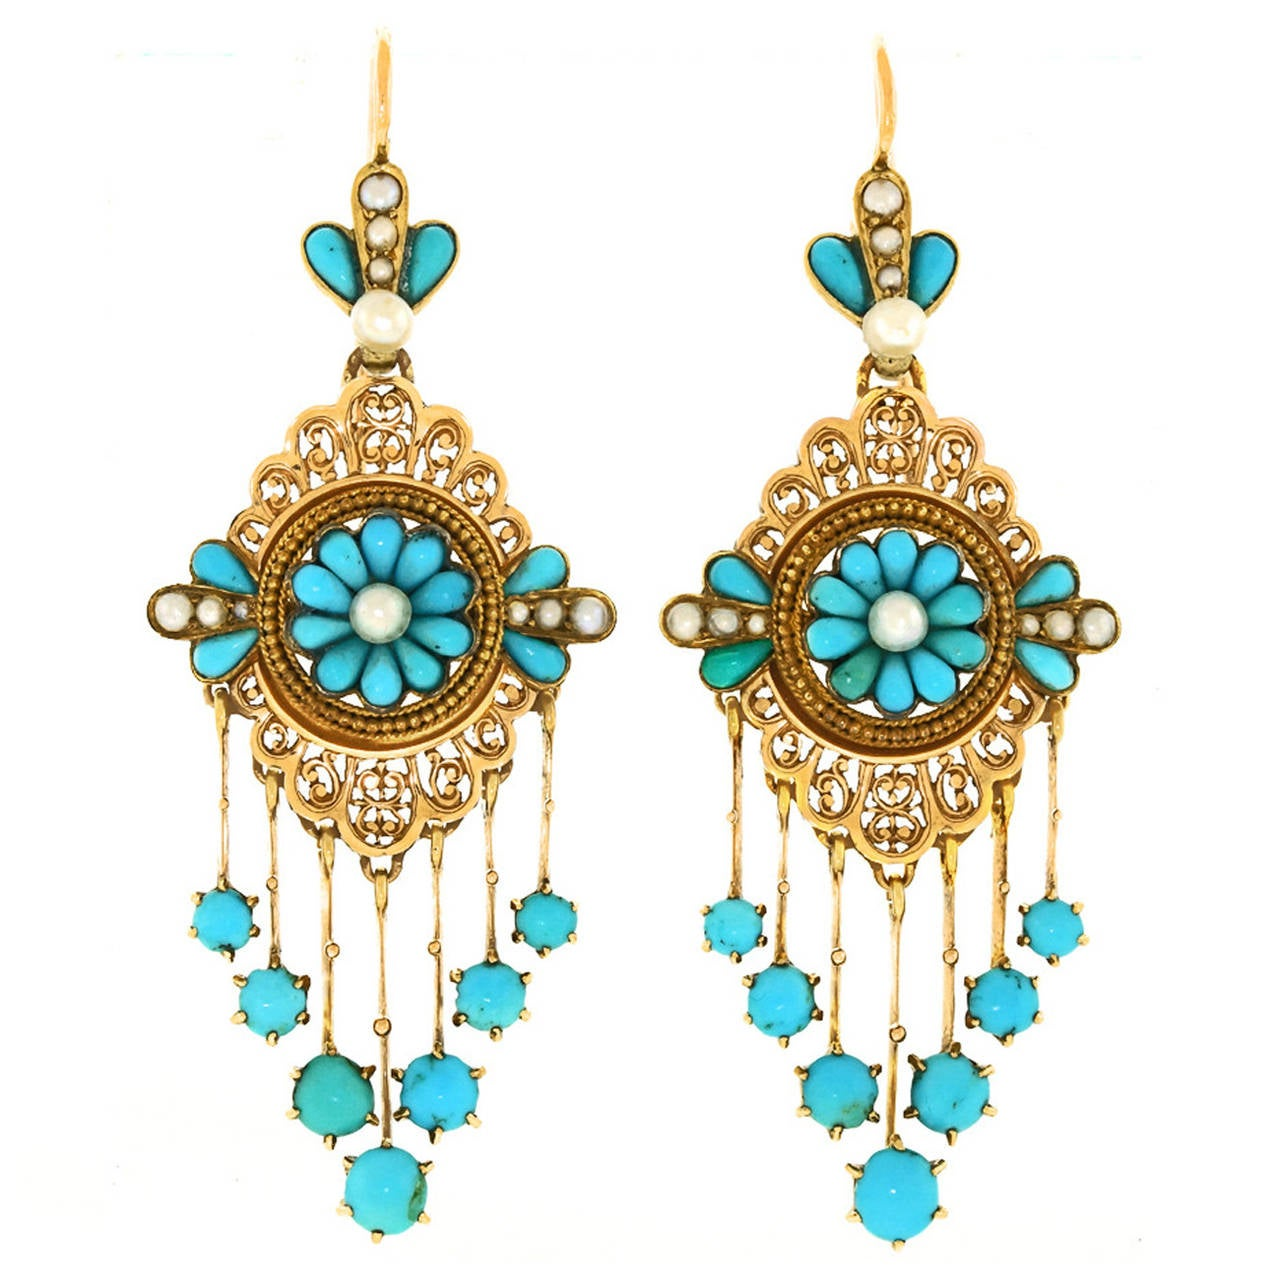 antique turquoise gold chandelier earrings for sale